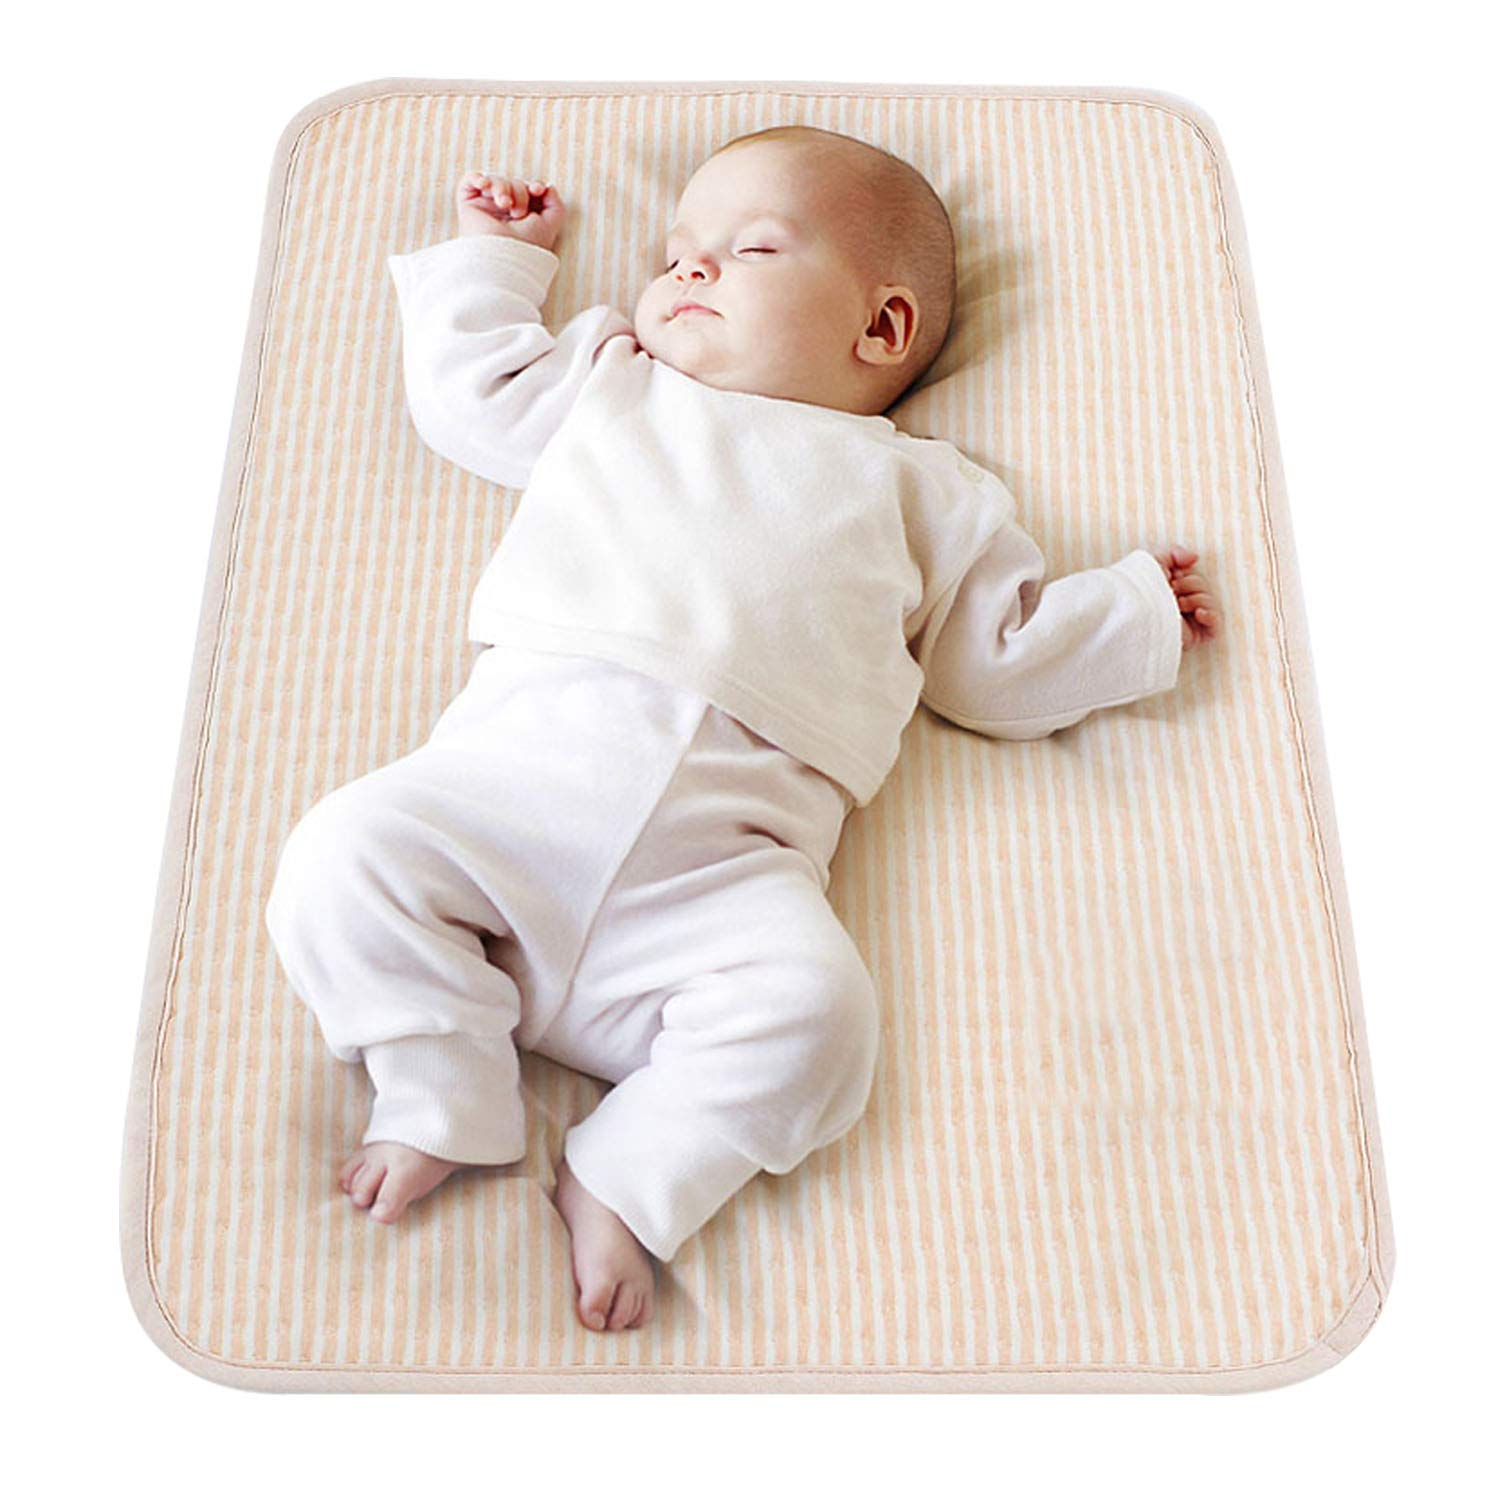 Baby Waterproof Bed Pad Washable Reusable Changing Pad Liner Cover Portable 100/% Cotton Diaper Urine Changing Mat Mattress Protector for Baby Toddler Girls Boys Newborn Elder Pet Adults 47.2 x 27.6